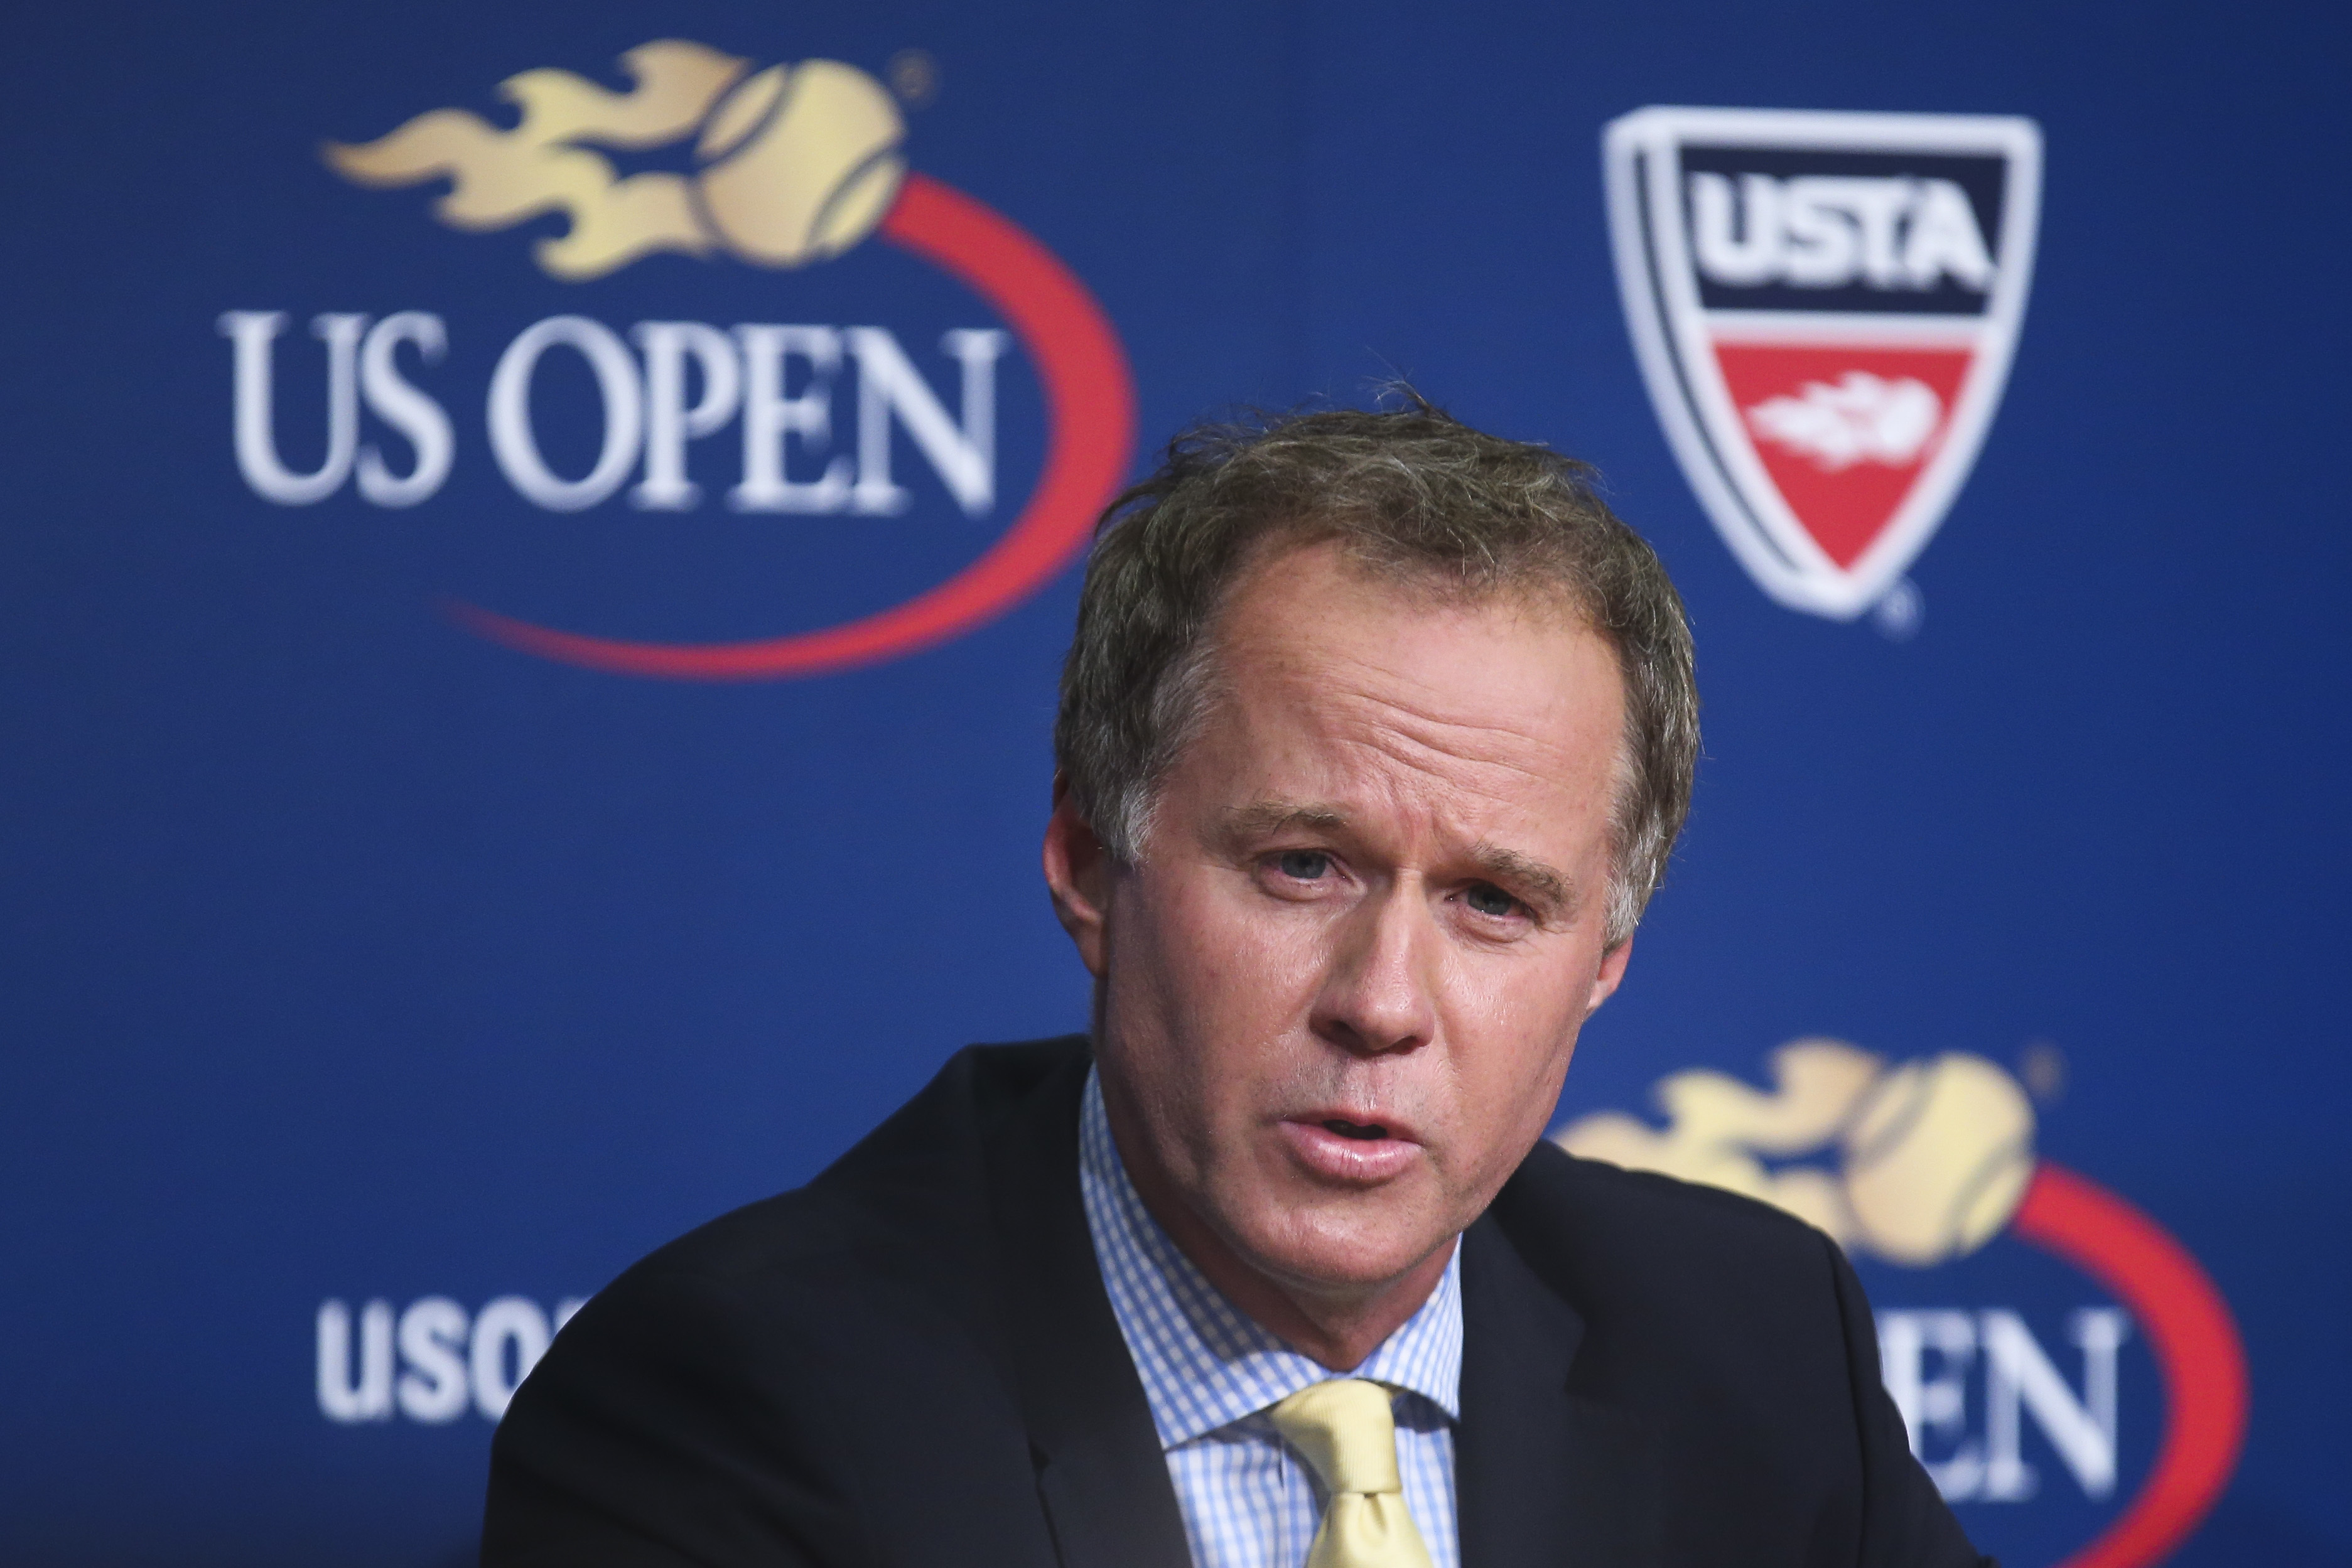 FILE - In this Sept. 3, 2014, file photo, Patrick McEnroe announces his resignation as the U.S. Tennis Association's general manager of player development, at a news conference at the U.S. Open tennis tournament in New York. Patrick McEnroe is the new co-